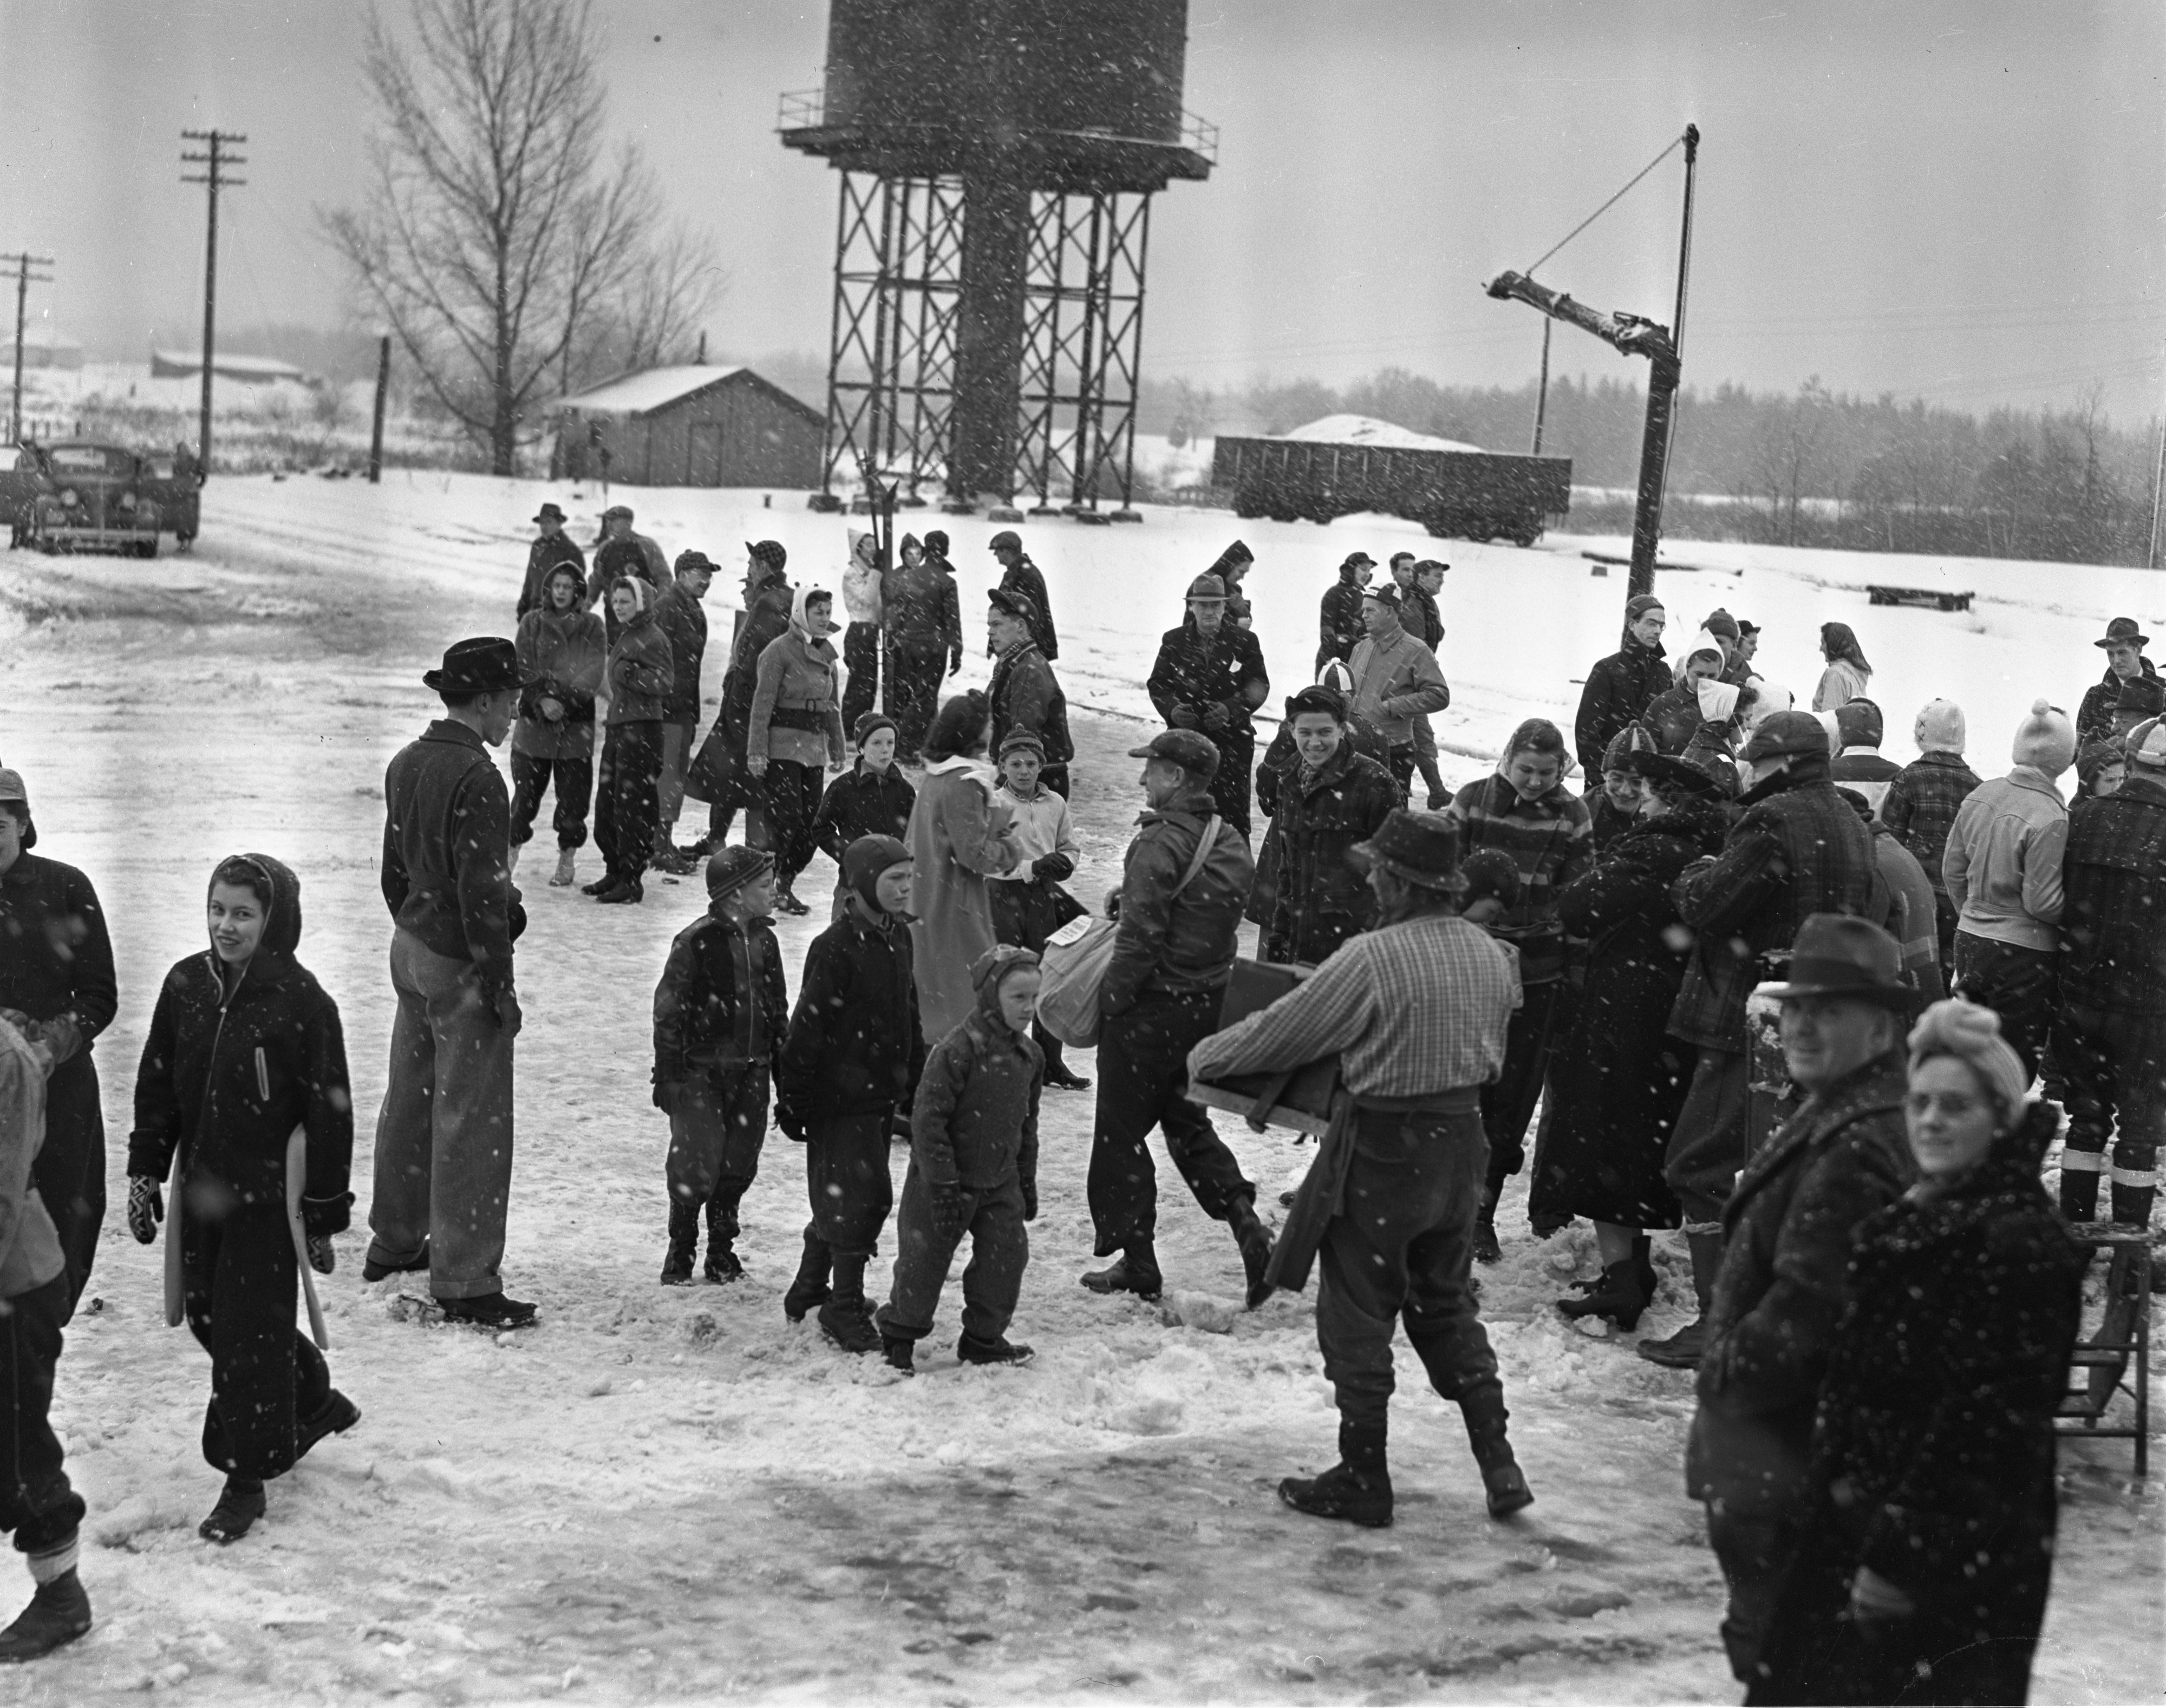 Visitors Arrive At Grayling Winter Sports Park, January 1940 image